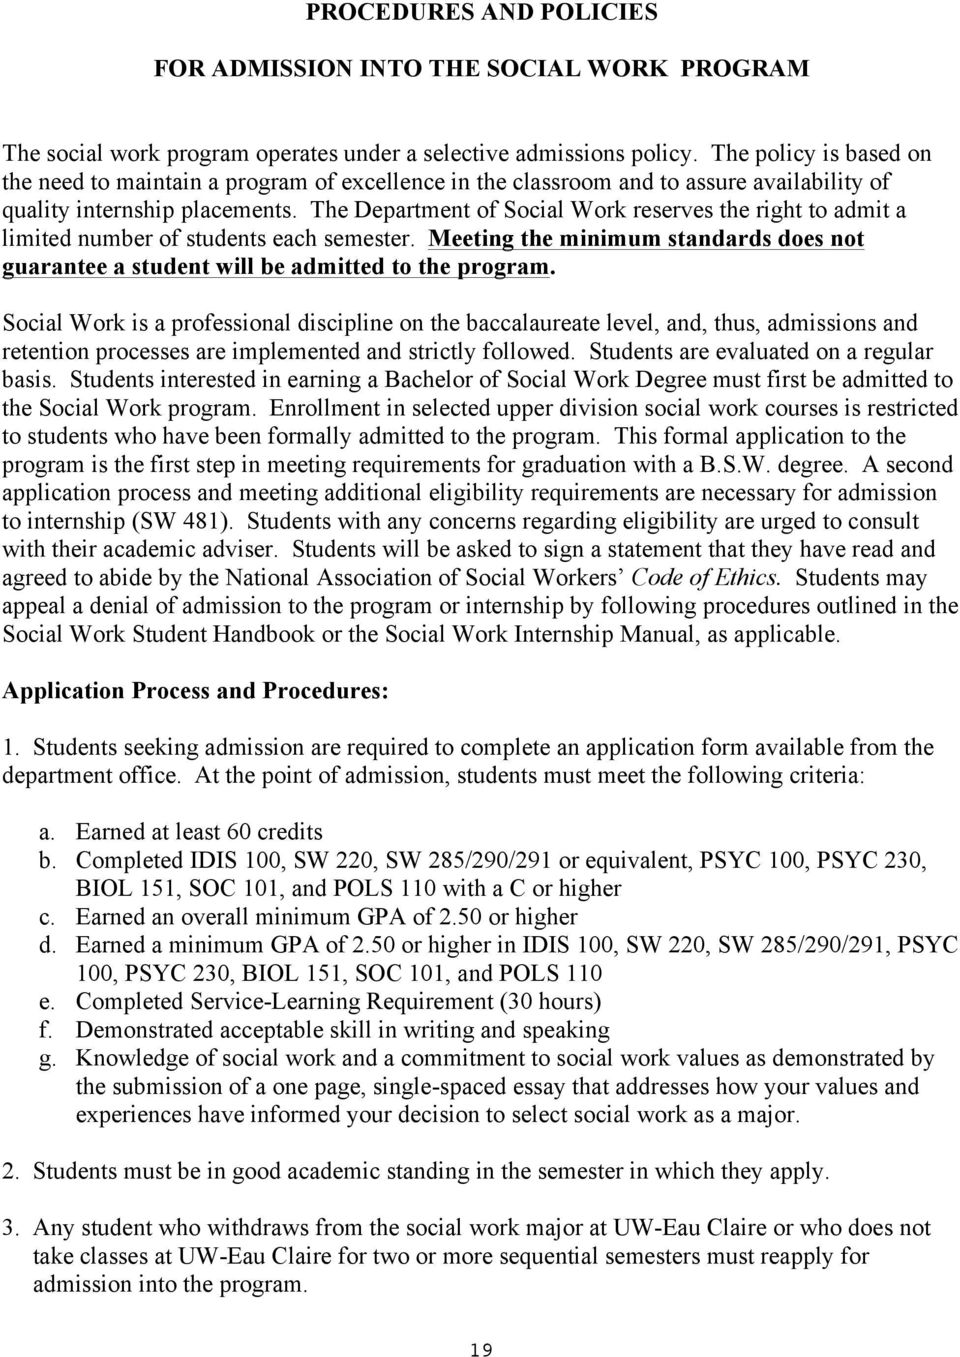 The Department of Social Work reserves the right to admit a limited number of students each semester. Meeting the minimum standards does not guarantee a student will be admitted to the program.